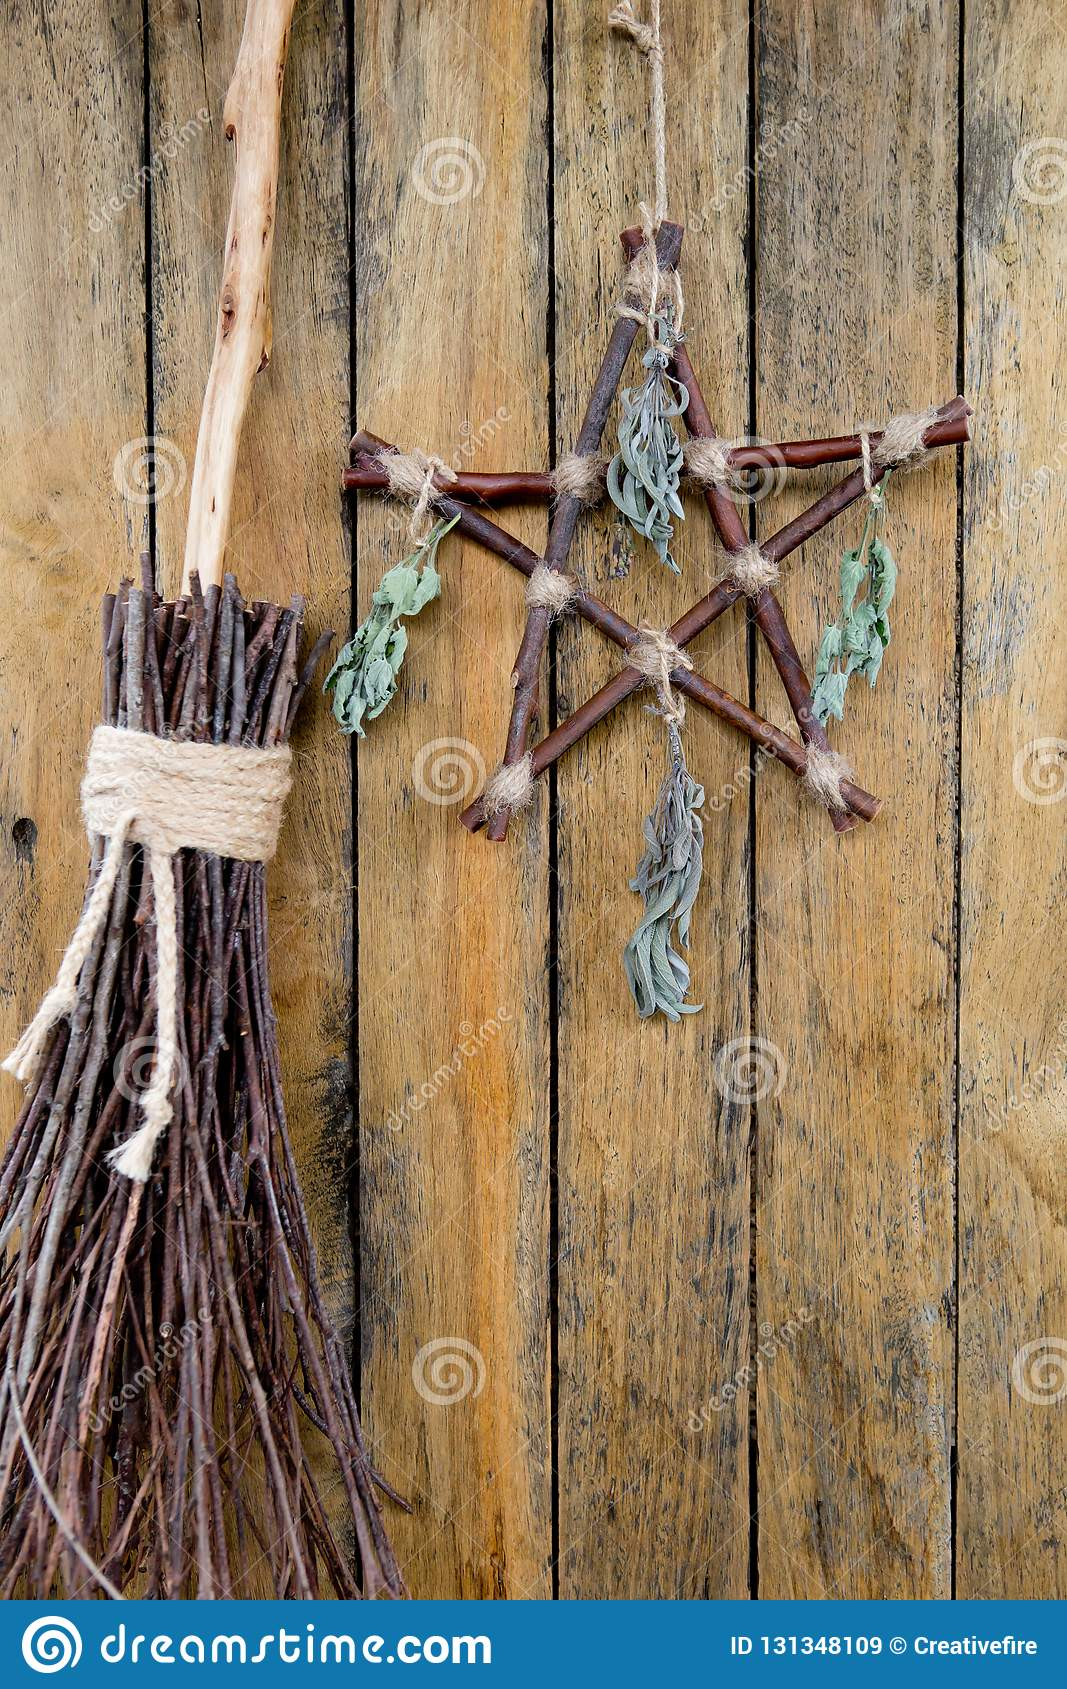 Branch Pentagram And Besom Witches Broom With Dried Herbs